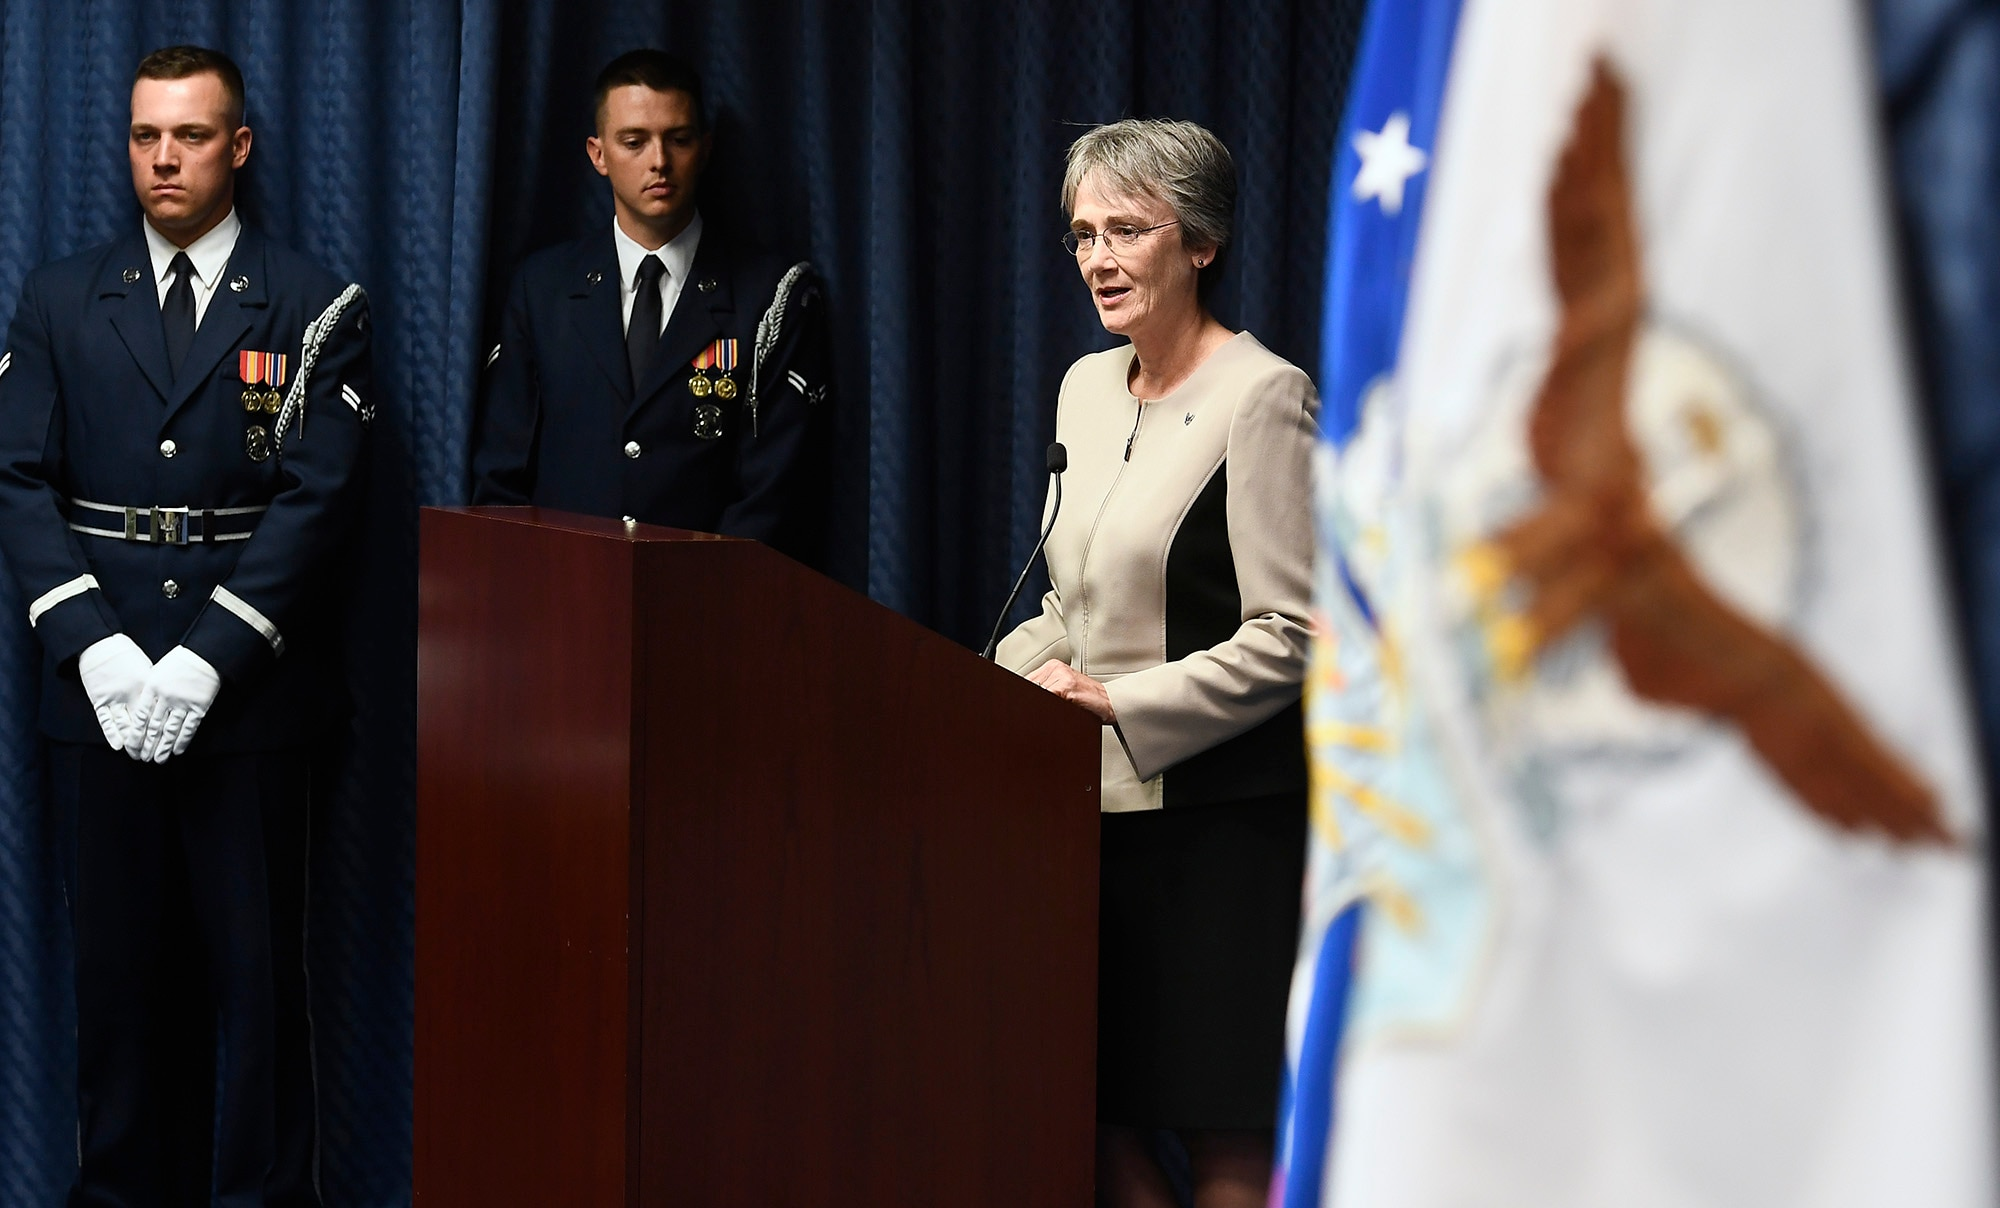 Secretary of the Air Force Heather Wilson congratulates undersecretary of the Air Force Matthew Donovan during his swearing-in ceremony at the Pentagon in Arlington County, Va., Aug. 11, 2017. (U.S. Air Force photo/Scott M. Ash)